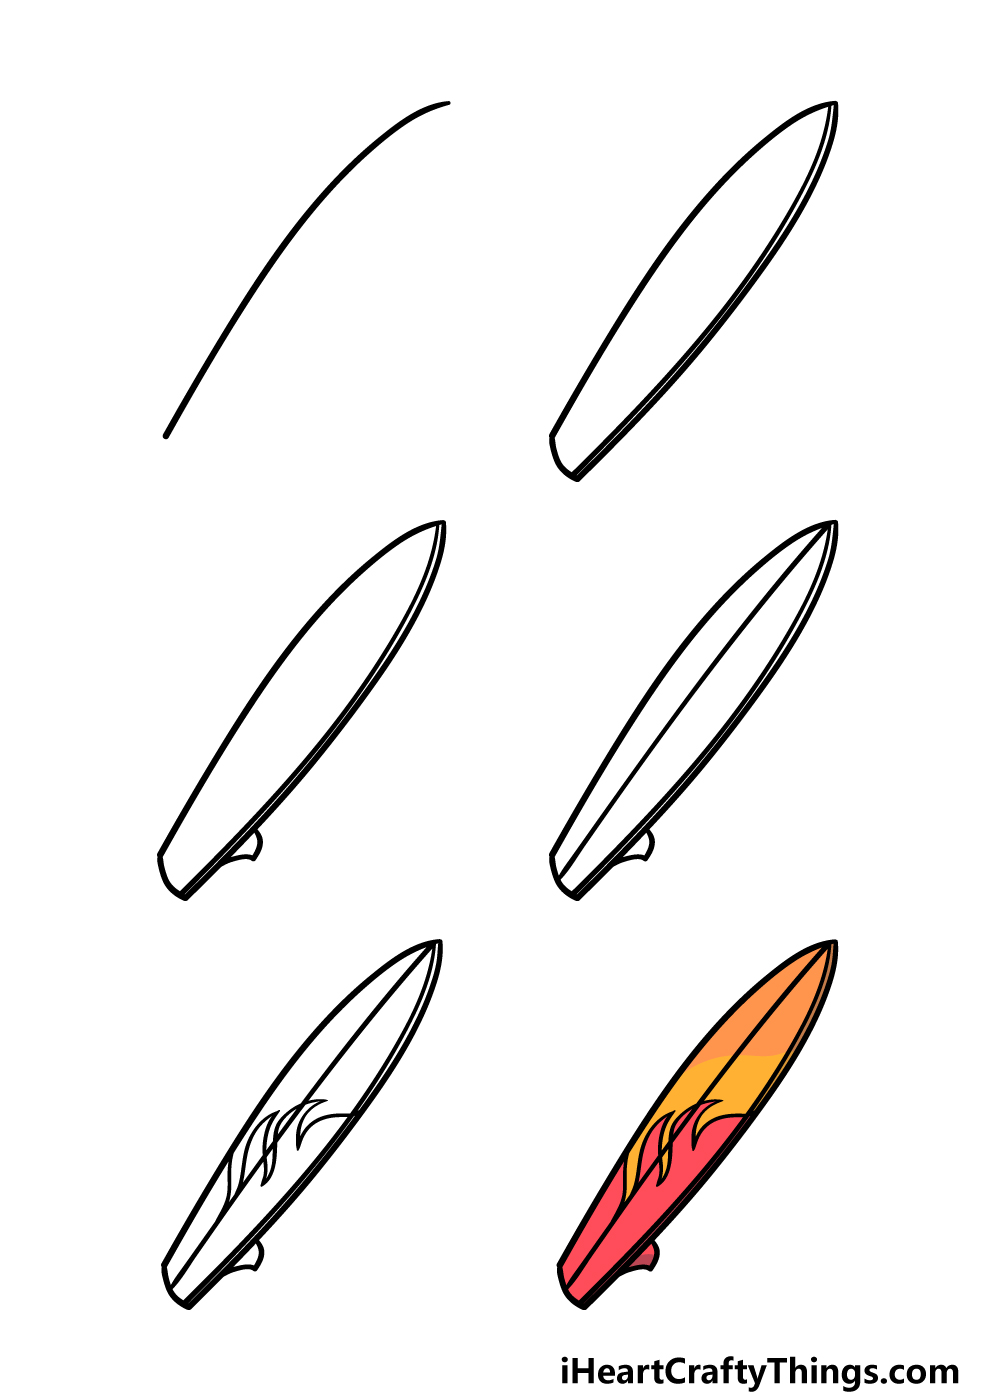 how to draw a surfboard in 6 steps